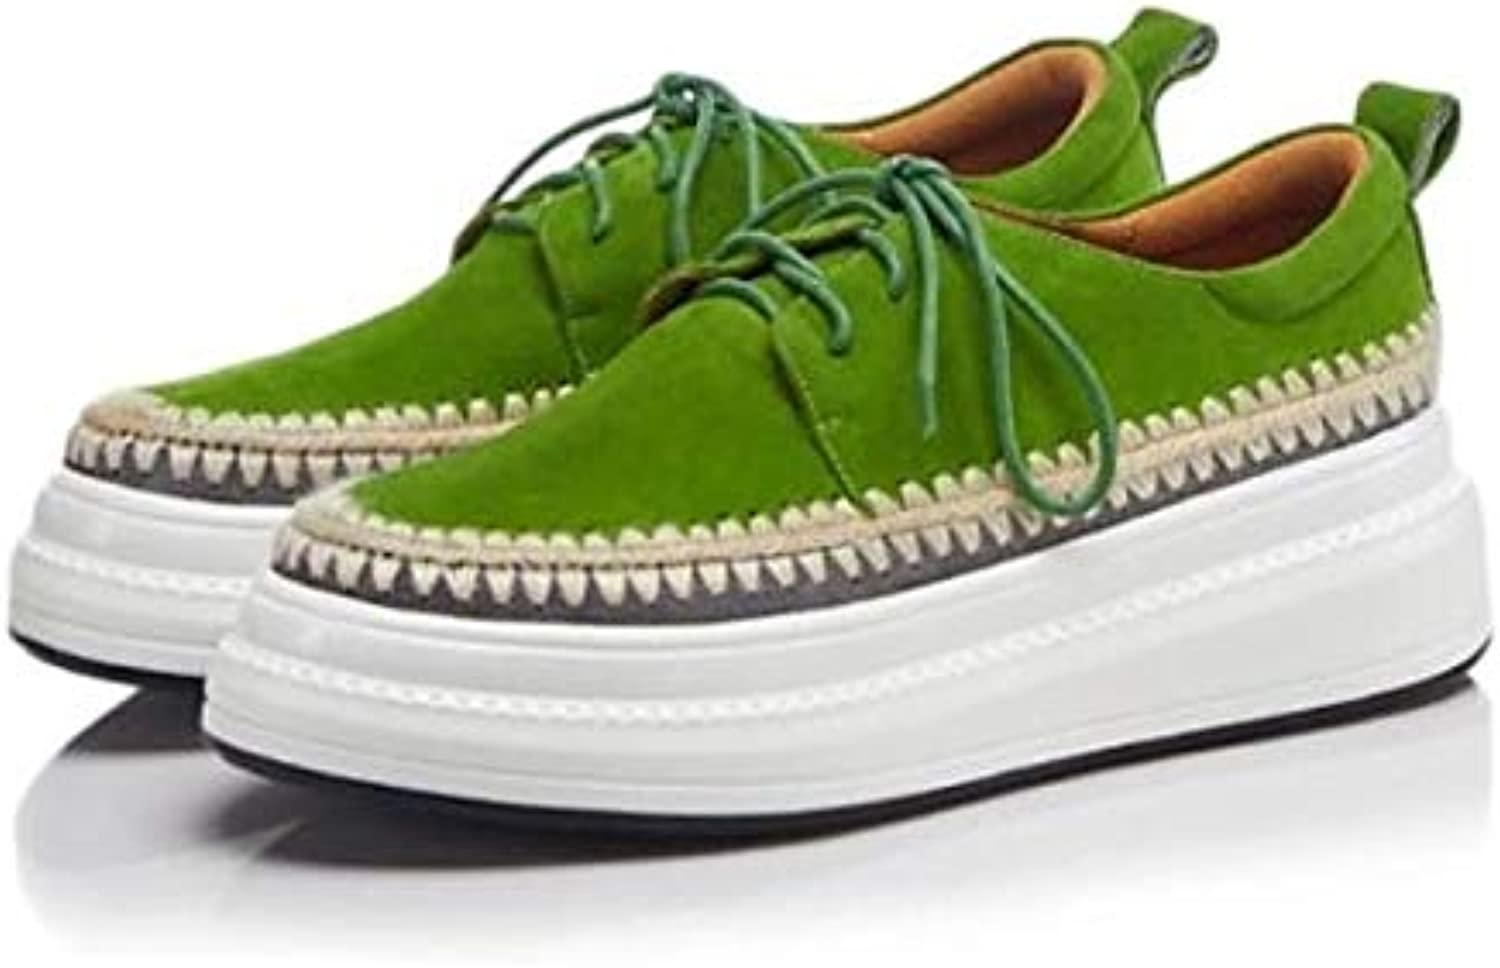 Women's shoes Suede Sheepskin Spring Summer Comfort Sneakers Creepers Closed Toe Green Pink